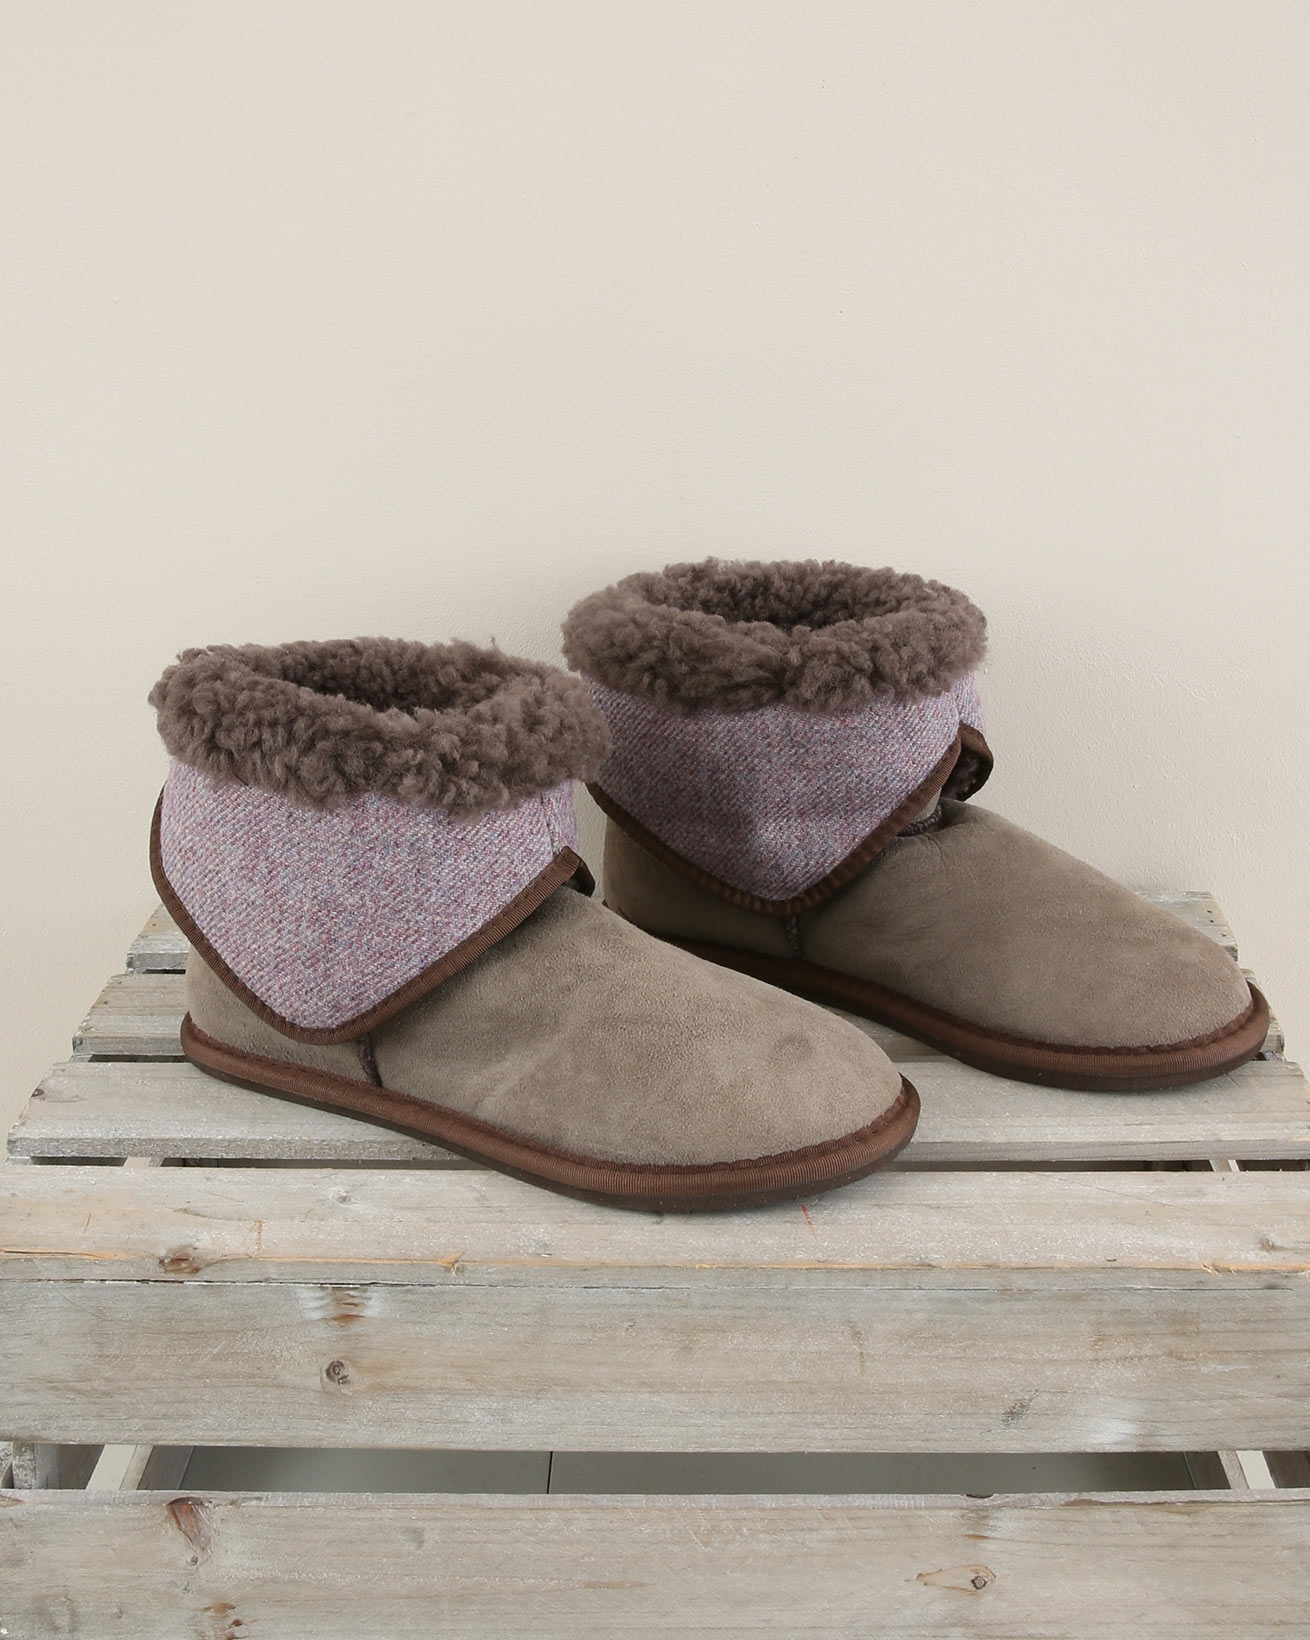 Tweed Fold Down Bootee Slipper - Size 6 - Vole Mix - 1903